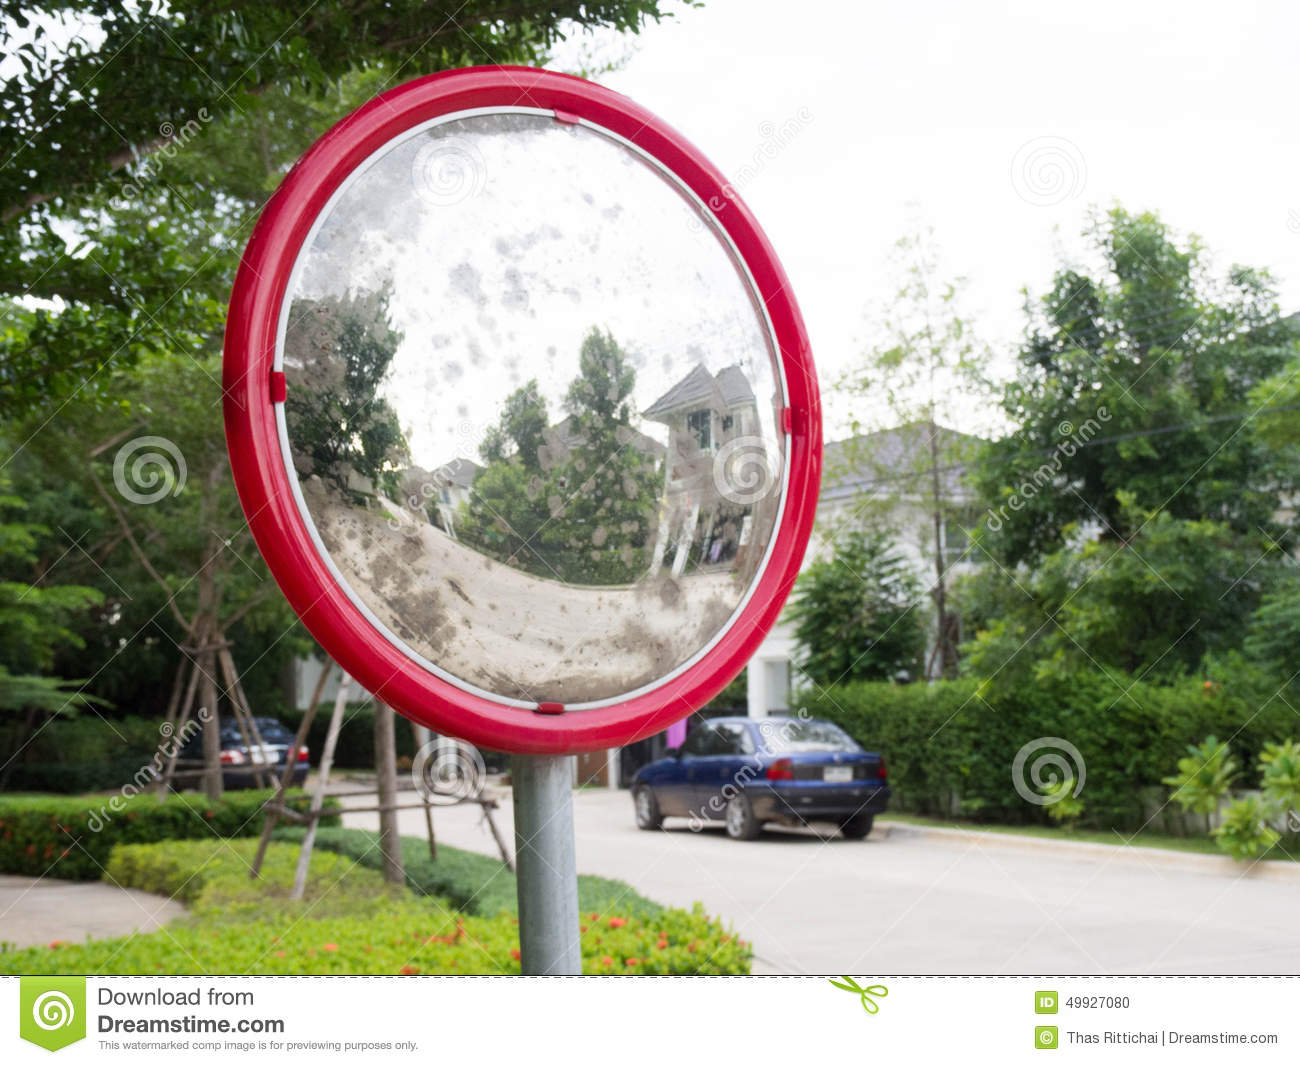 Miroir Carrefour Miroirs Convexes Rouges Photo Stock Image Du Playground 49927080